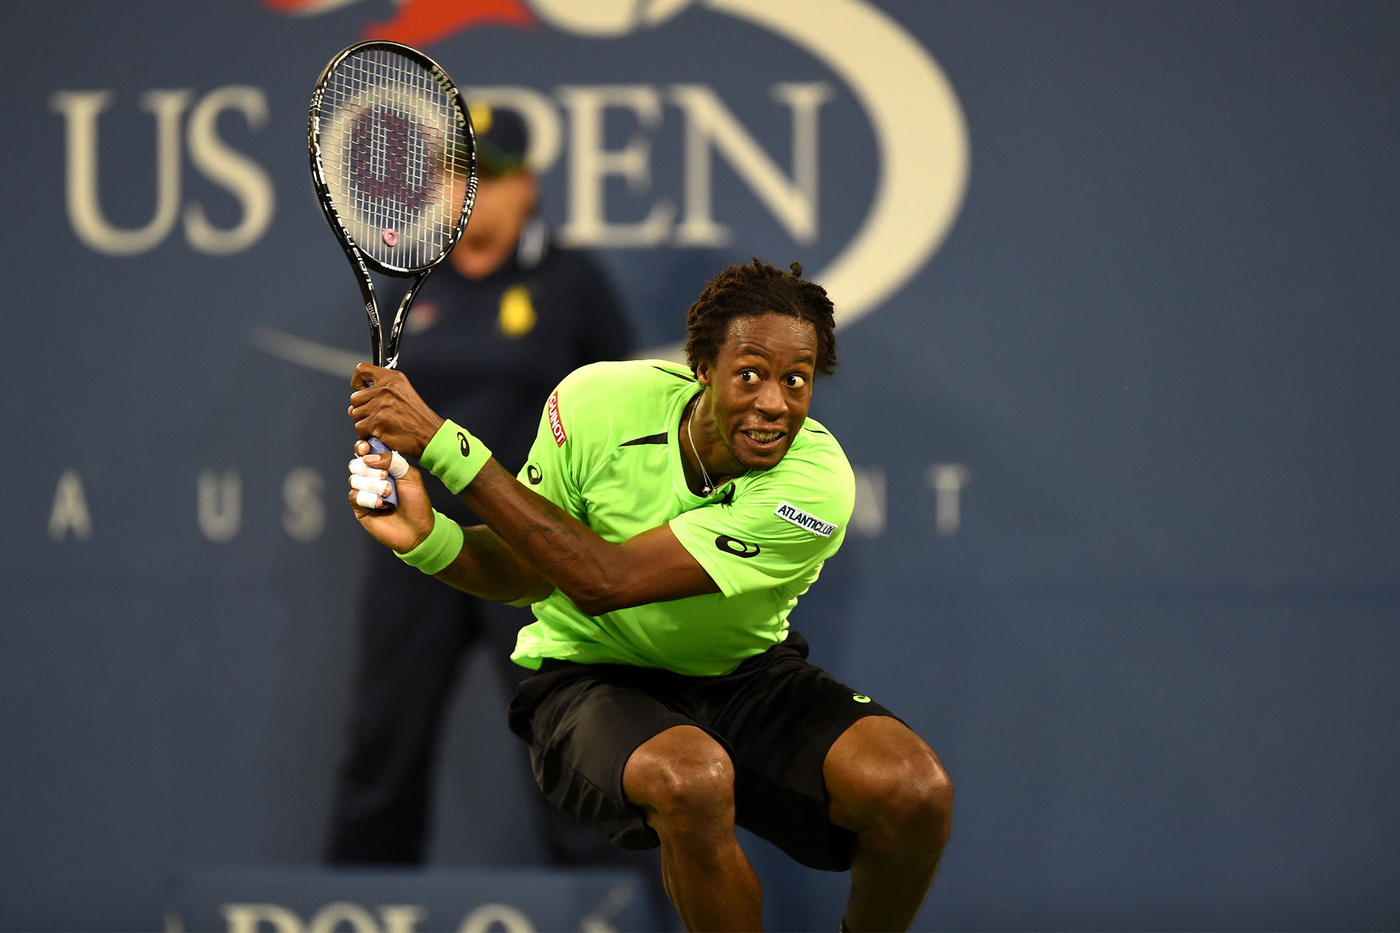 Gael Monfils Biography Gael Monfils During His